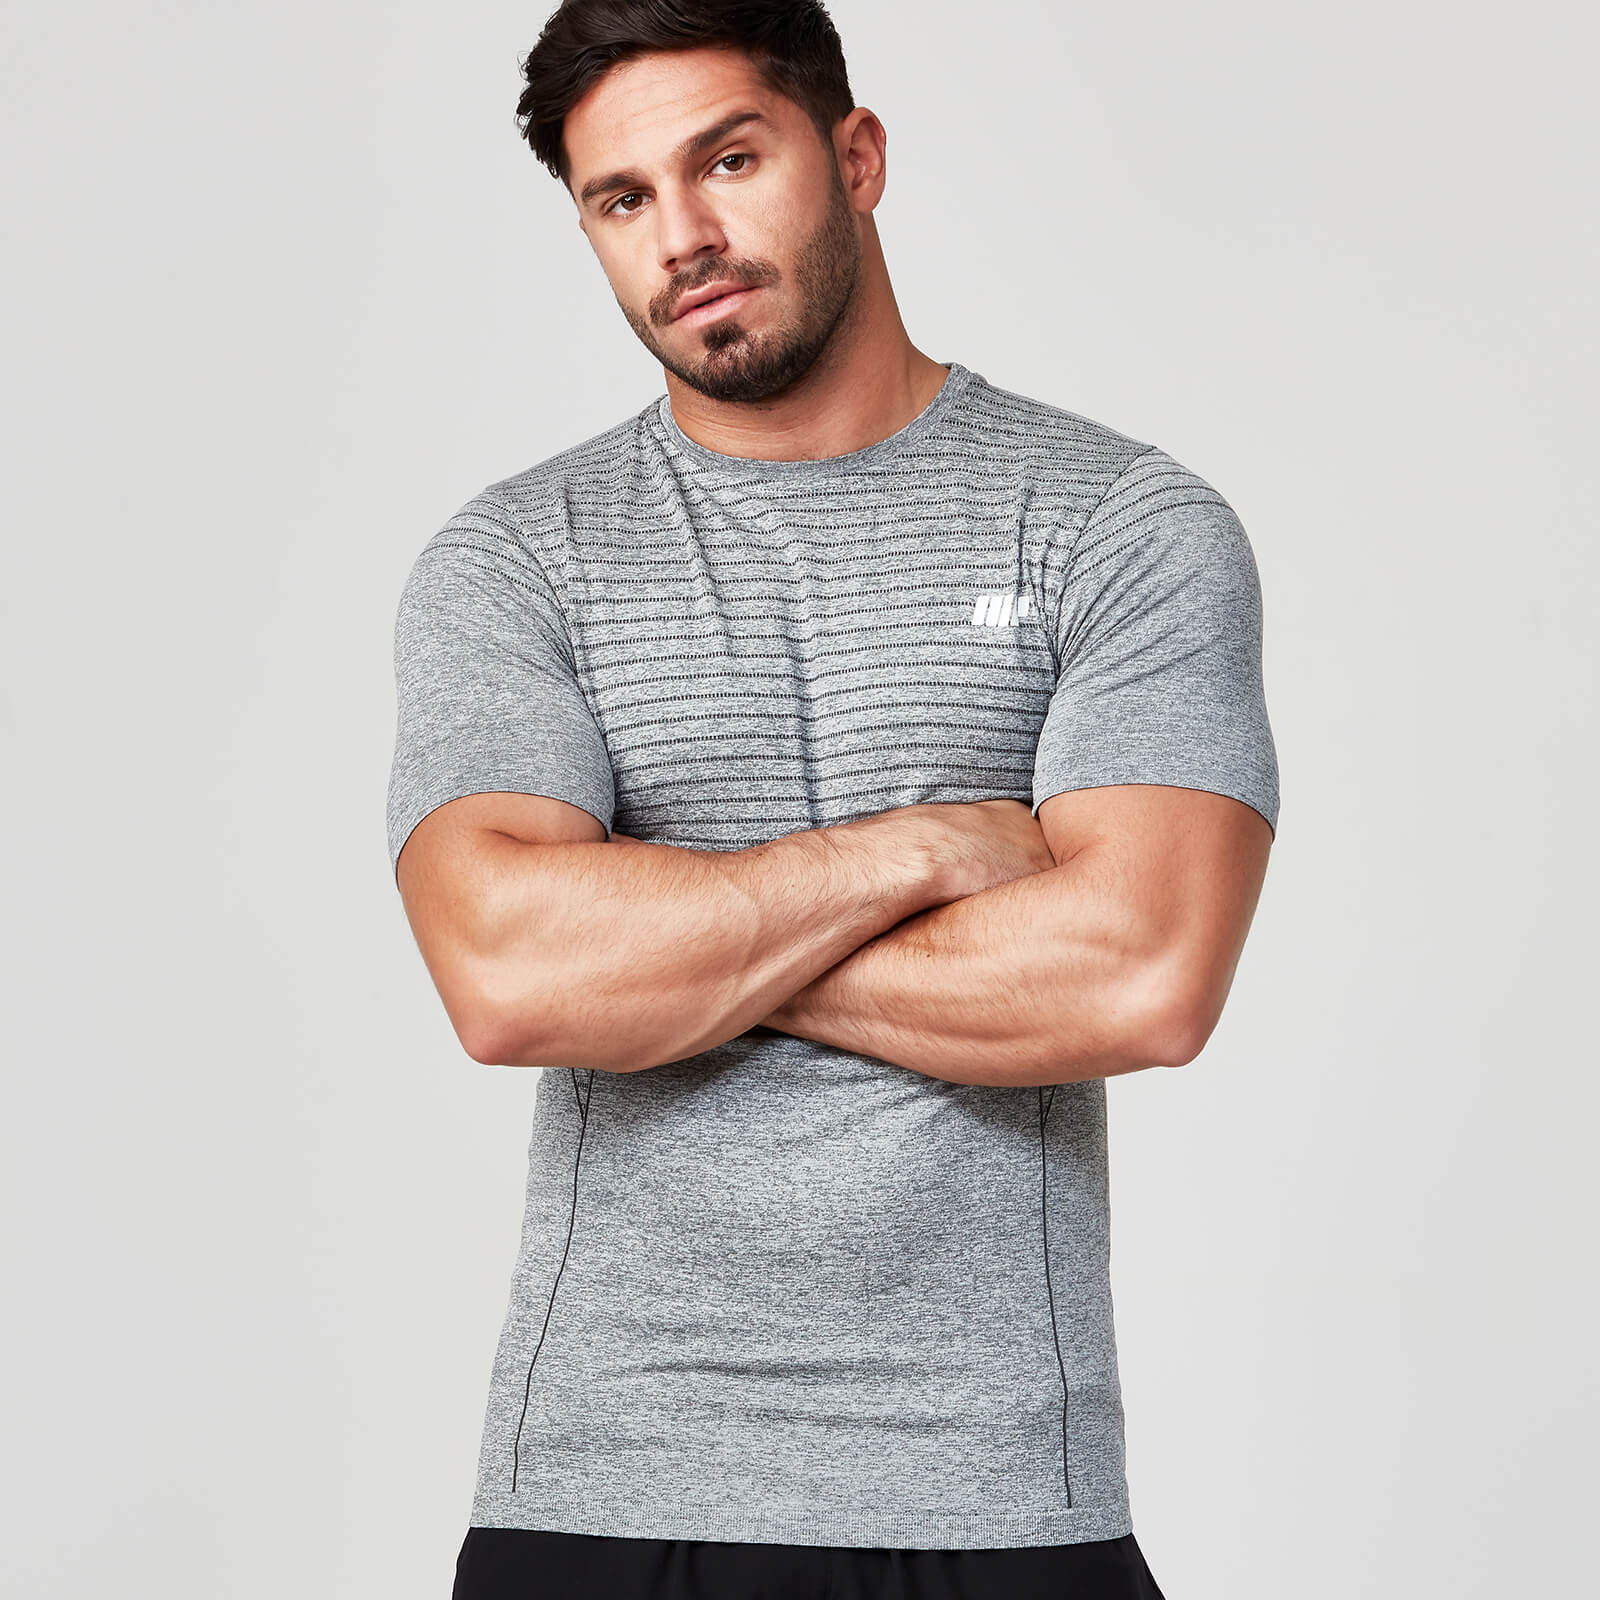 Myprotein Seamless Short Sleeve T-Shirt - Grey Marl - XL